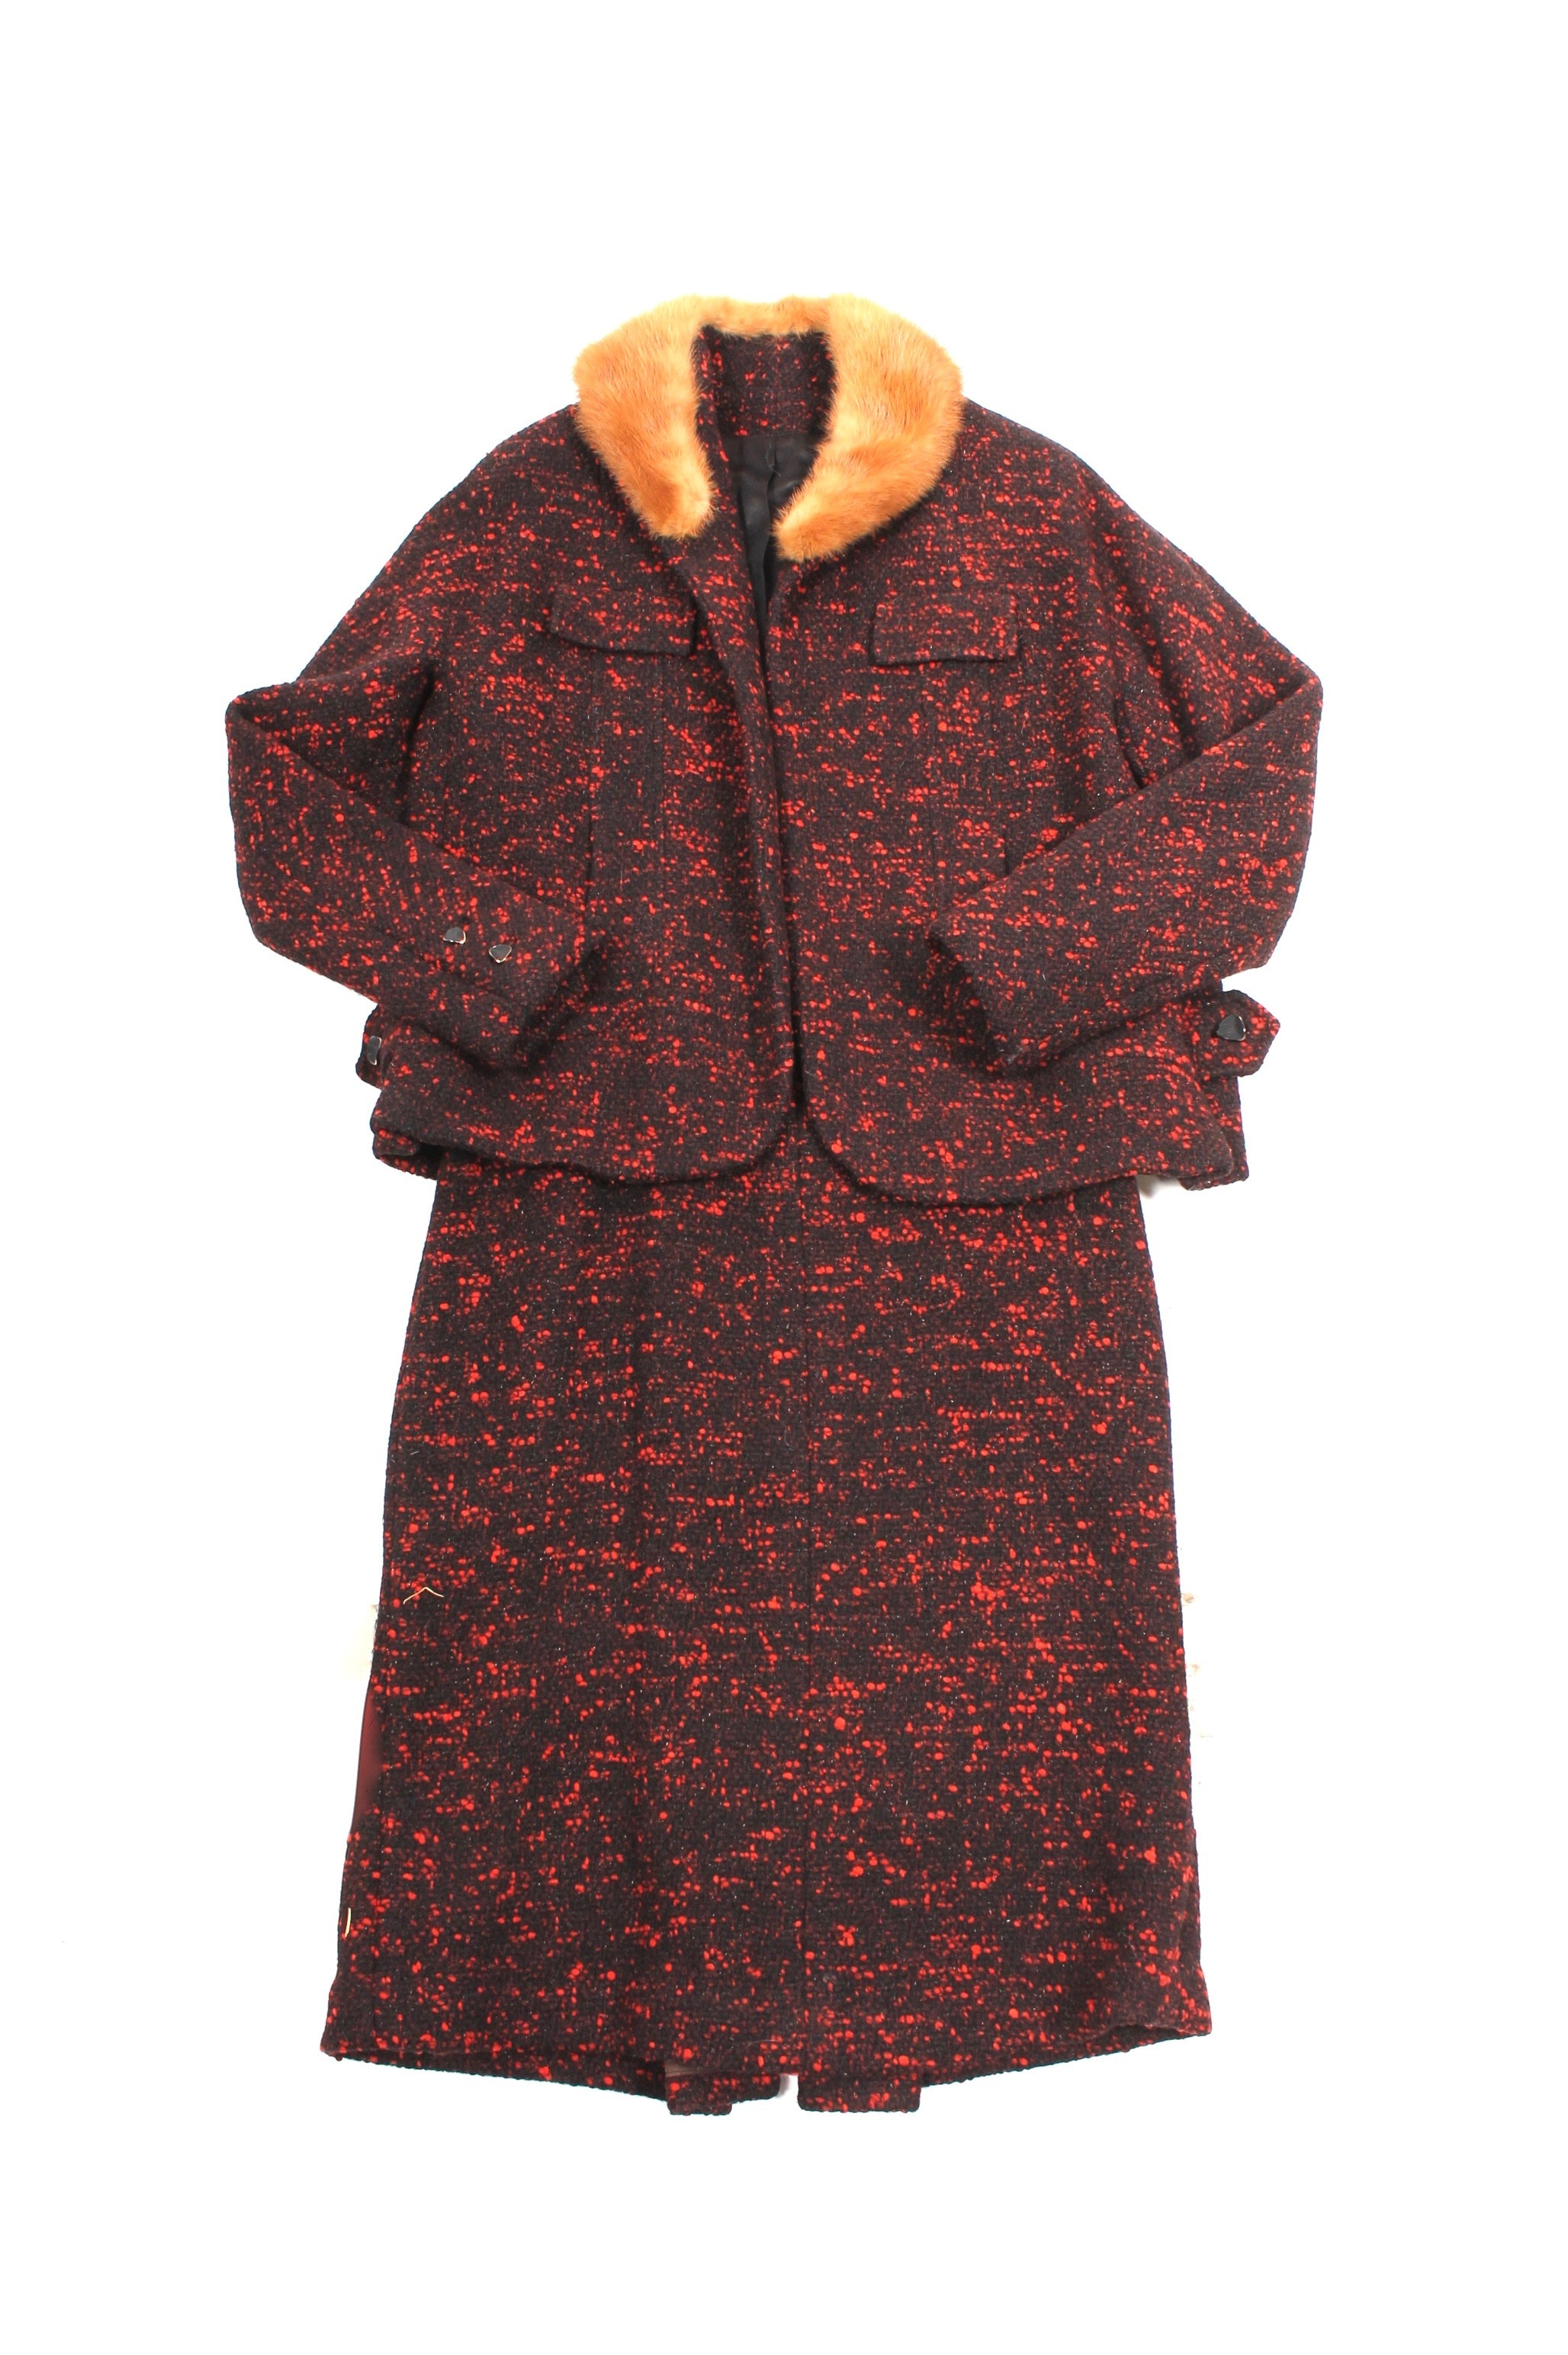 Vintage Bouclé Wool Jacket With Mink Collar and Skirt